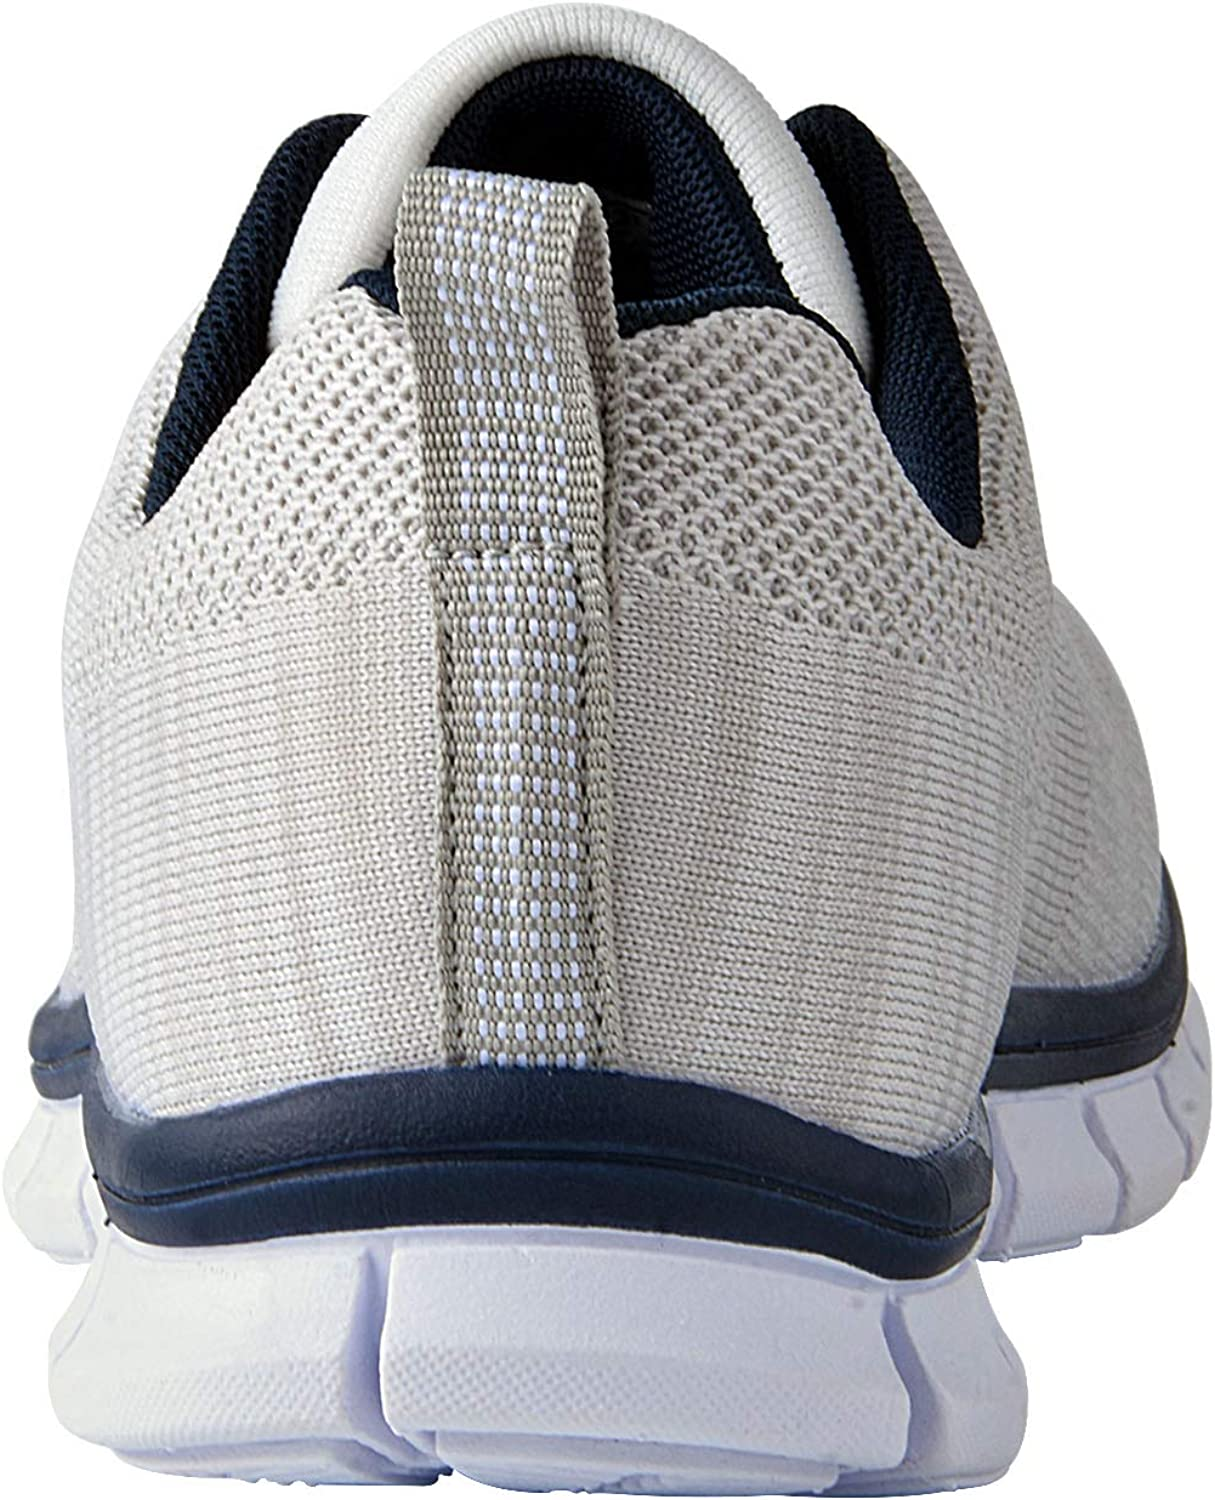 Knixmax Basket Femme Homme Chaussure de Sport Running Confortable Fitness Mode Sneakers Homme Blanc